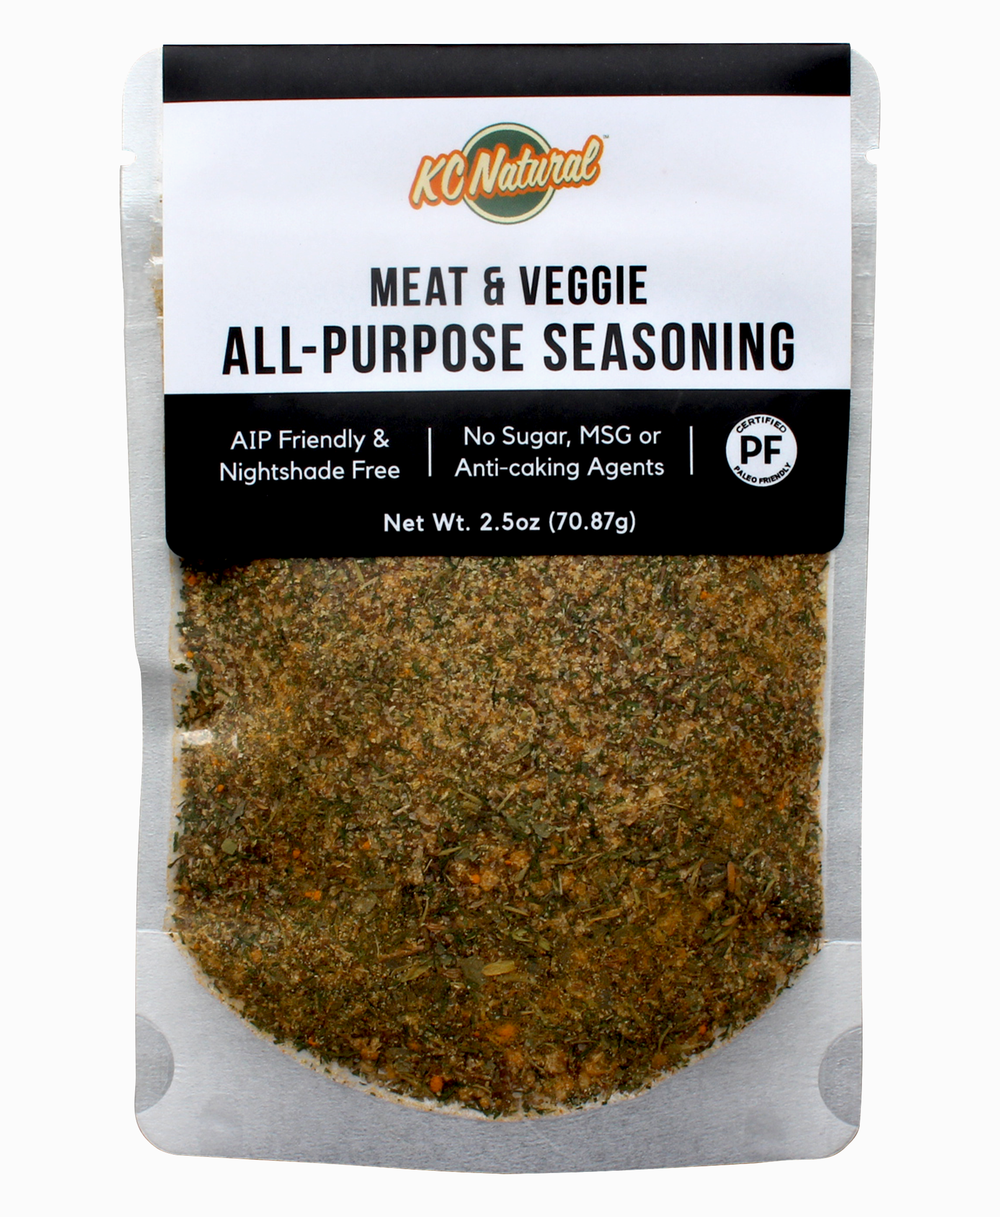 kcnatural-meat-veggie-seasoning.png